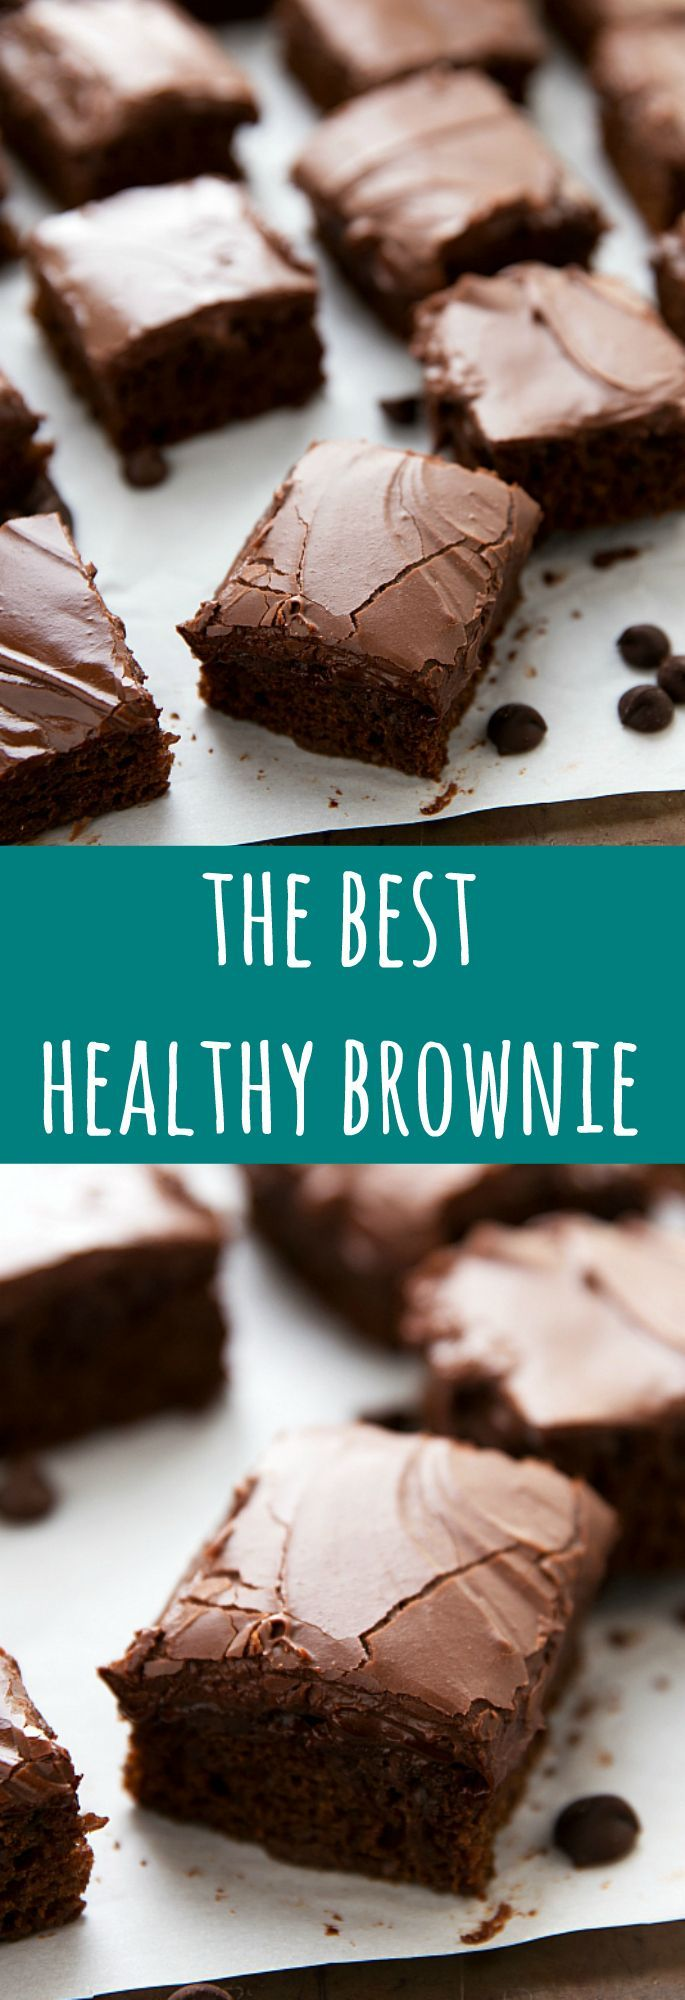 The Best Healthier Brownies (Video) | Chelsea's Messy Apron -  The BEST healthy brownies with no fl